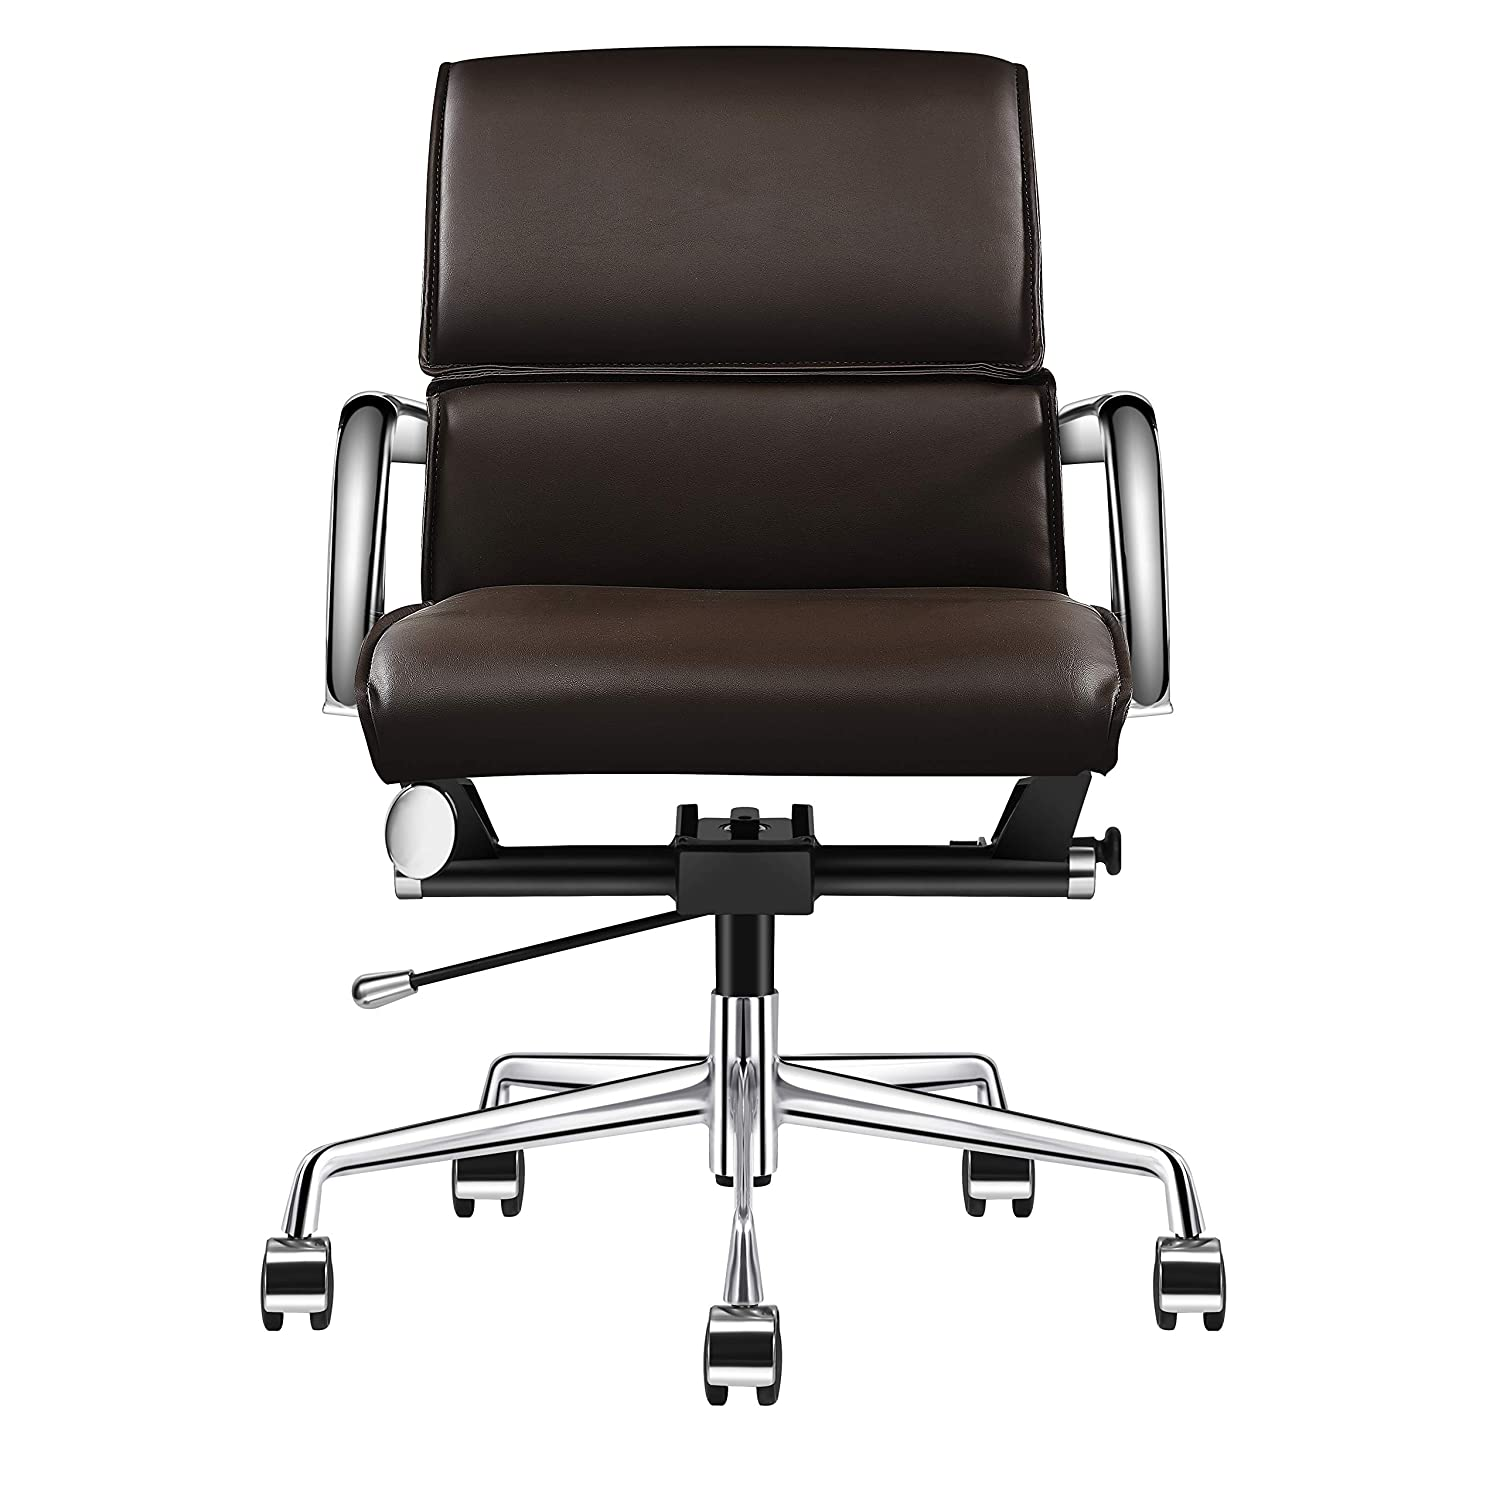 Ergonomic Office Chair, Desk Chair with Arms, Mid Back Office Chair Brown, Mid Back Desk Chair, Executive Chair with Back Support, Brown Receptionist Chairs, Brown Office Chair